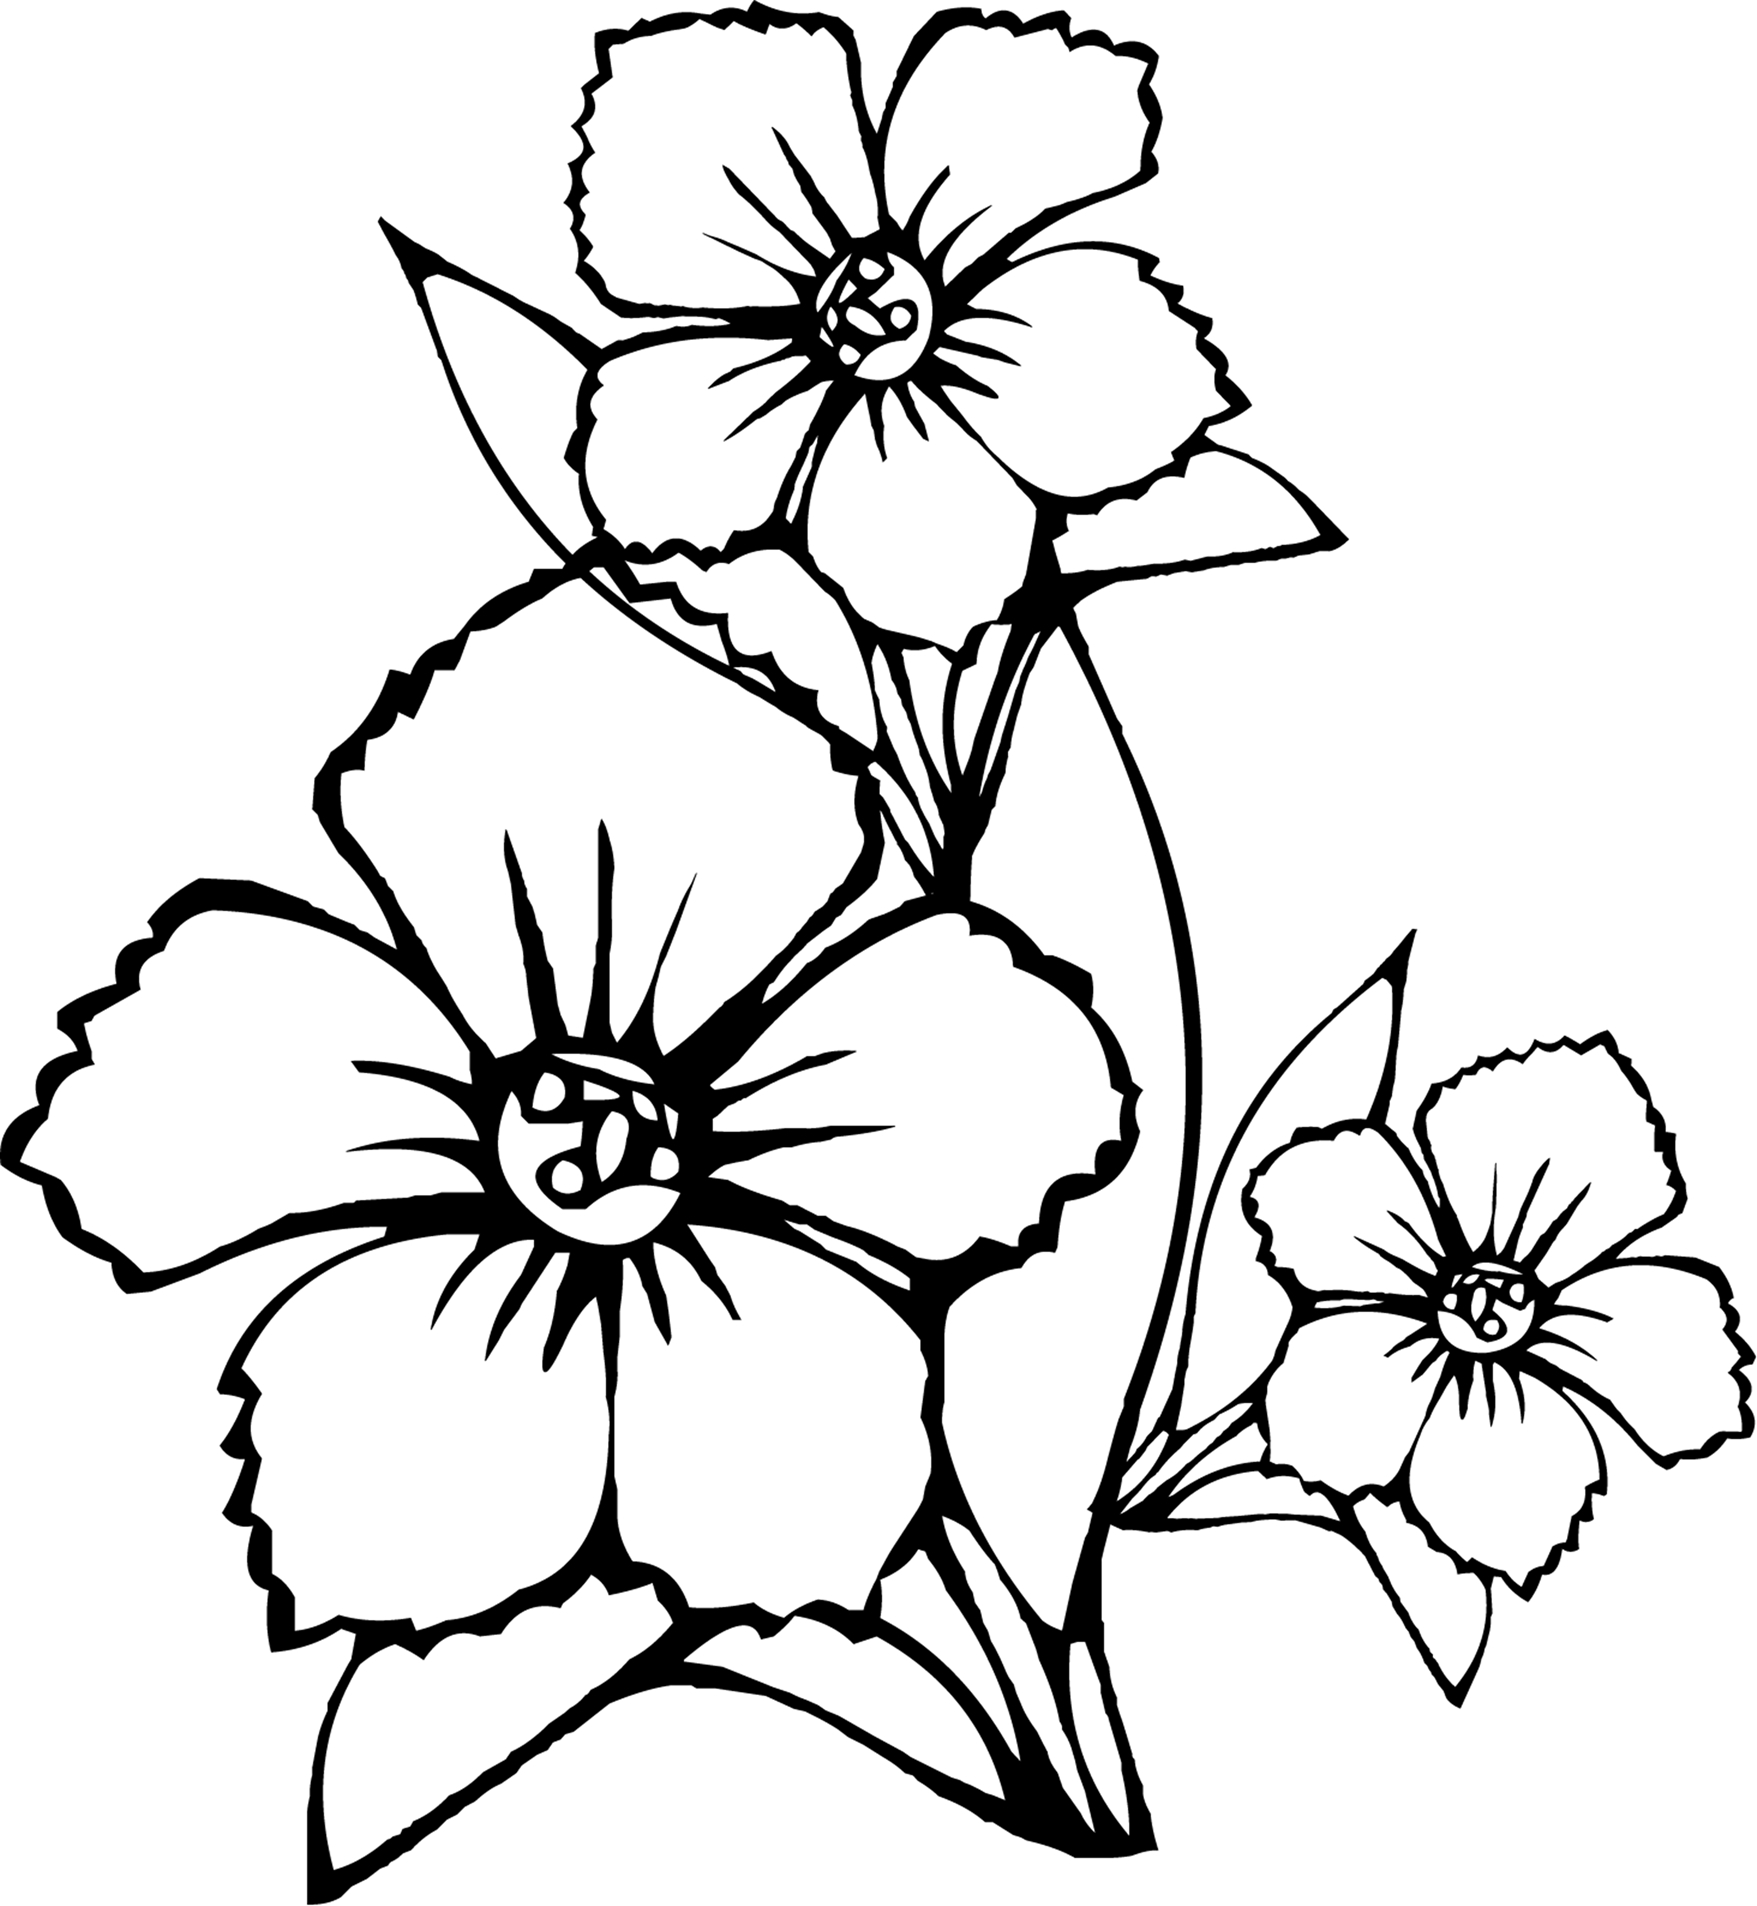 coloring pic of flower free easy to print flower coloring pages tulamama pic of coloring flower